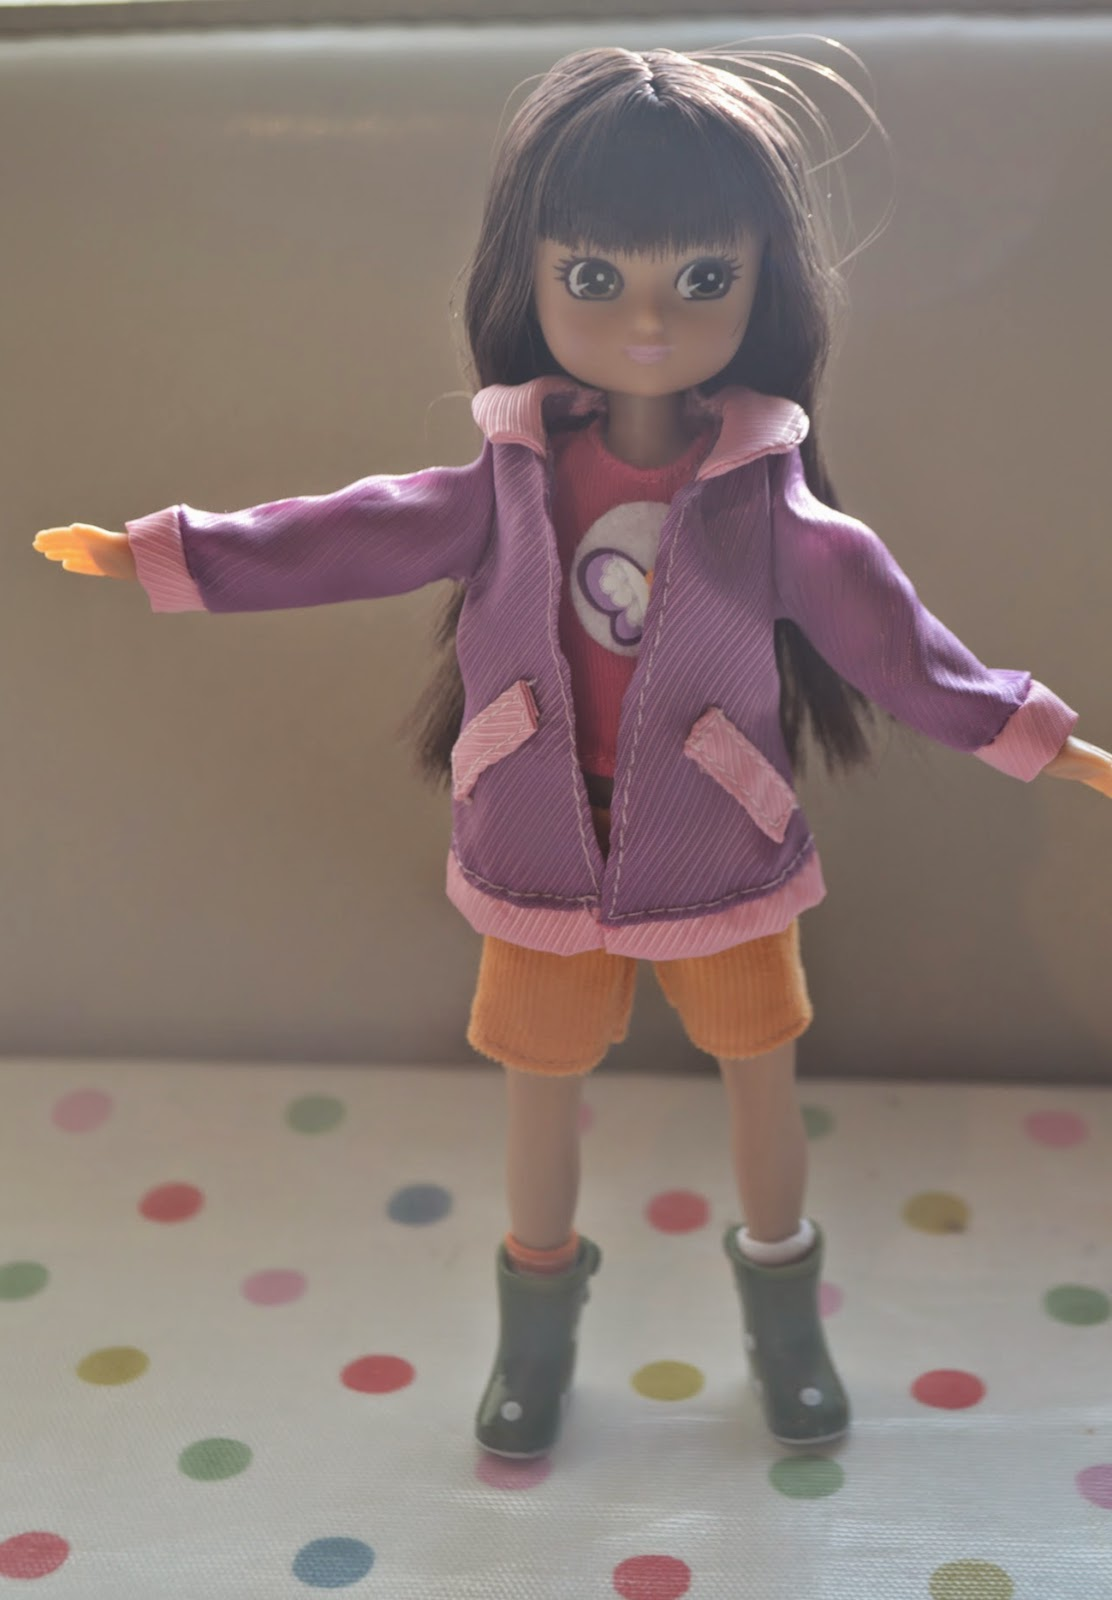 Lottie Doll Butterfly Protector Review and Giveaway